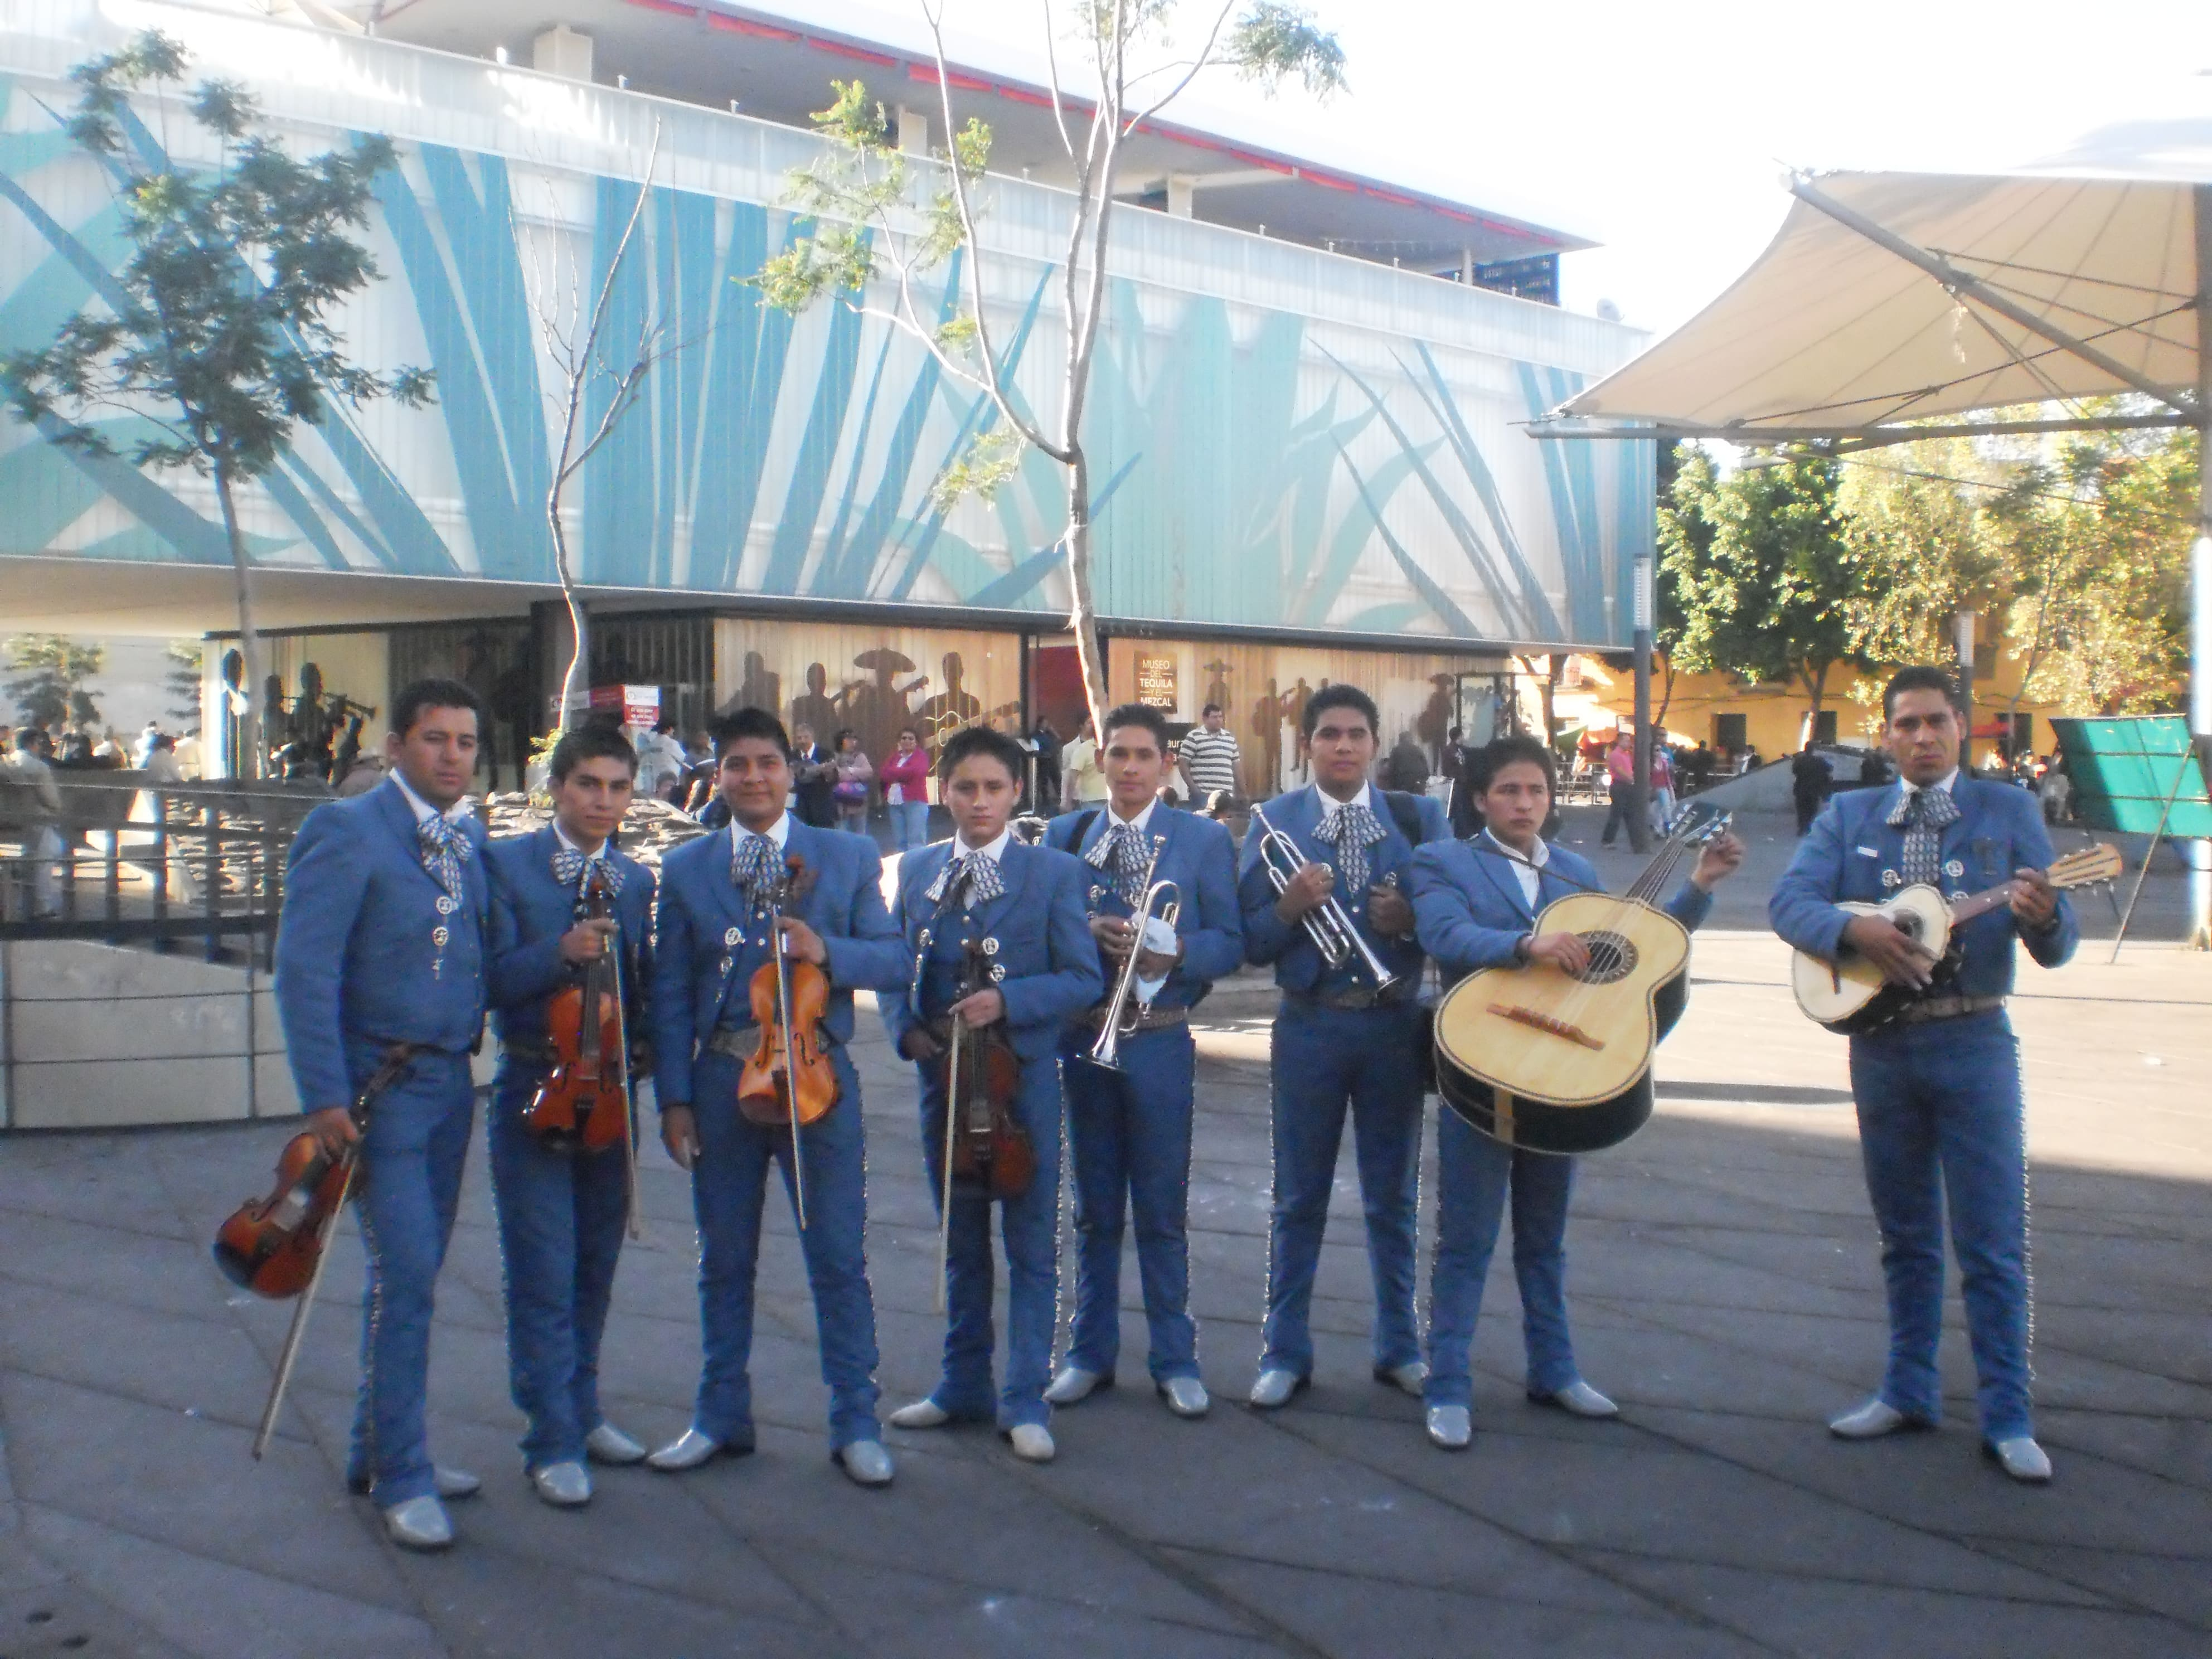 Plaza Garibaldi is a Mexico City must see